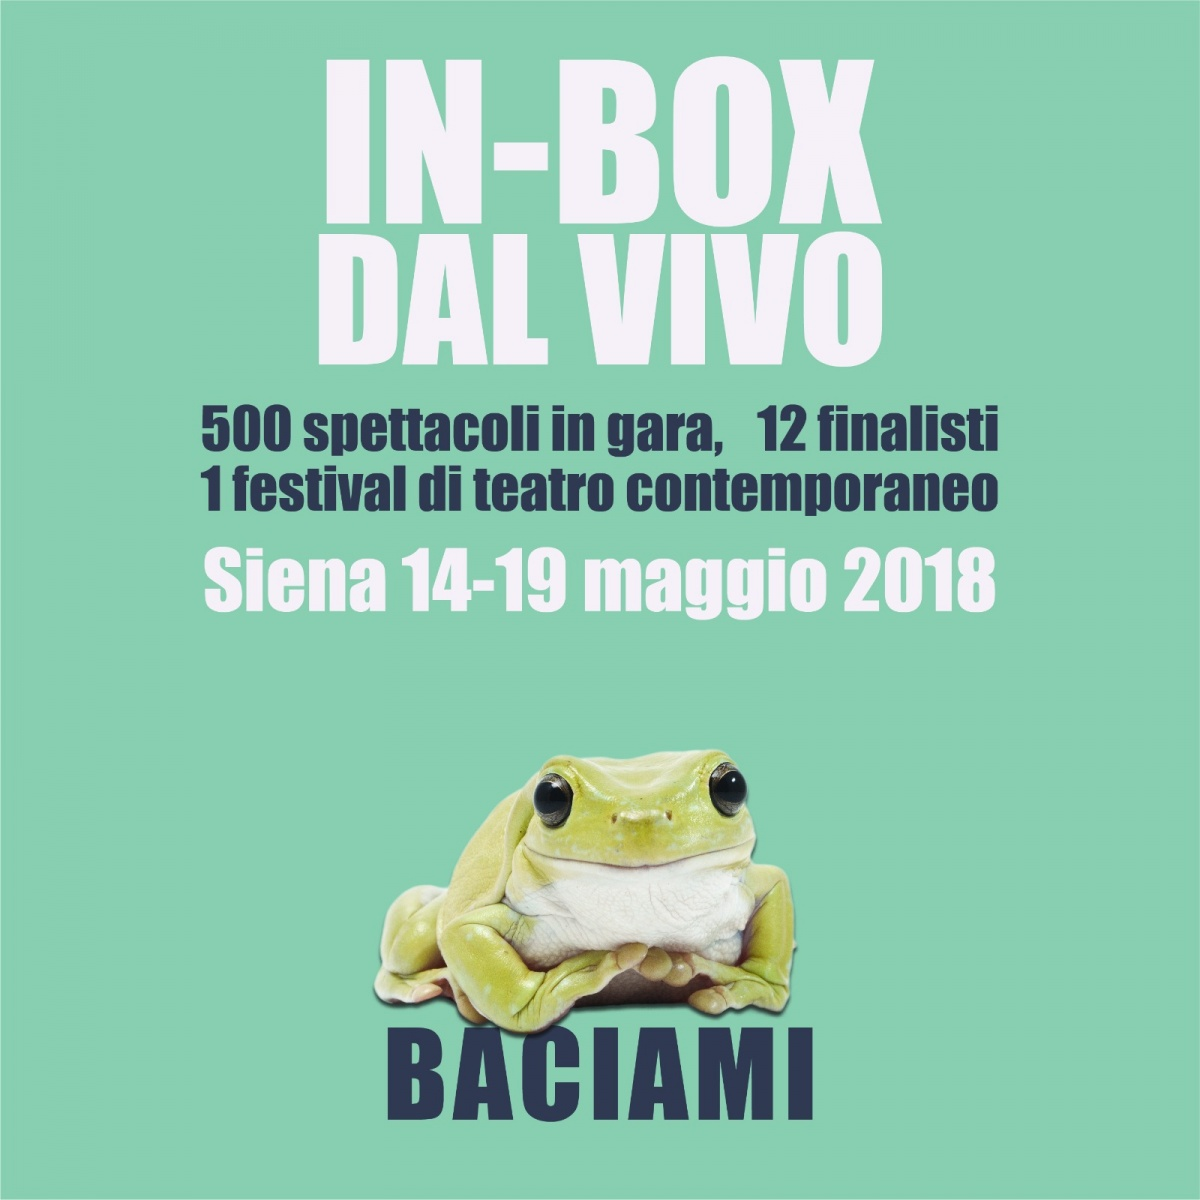 Vince IN – BOX dal vivo Siena 2018 It's app to you – o del solipsismo (Bahamut)